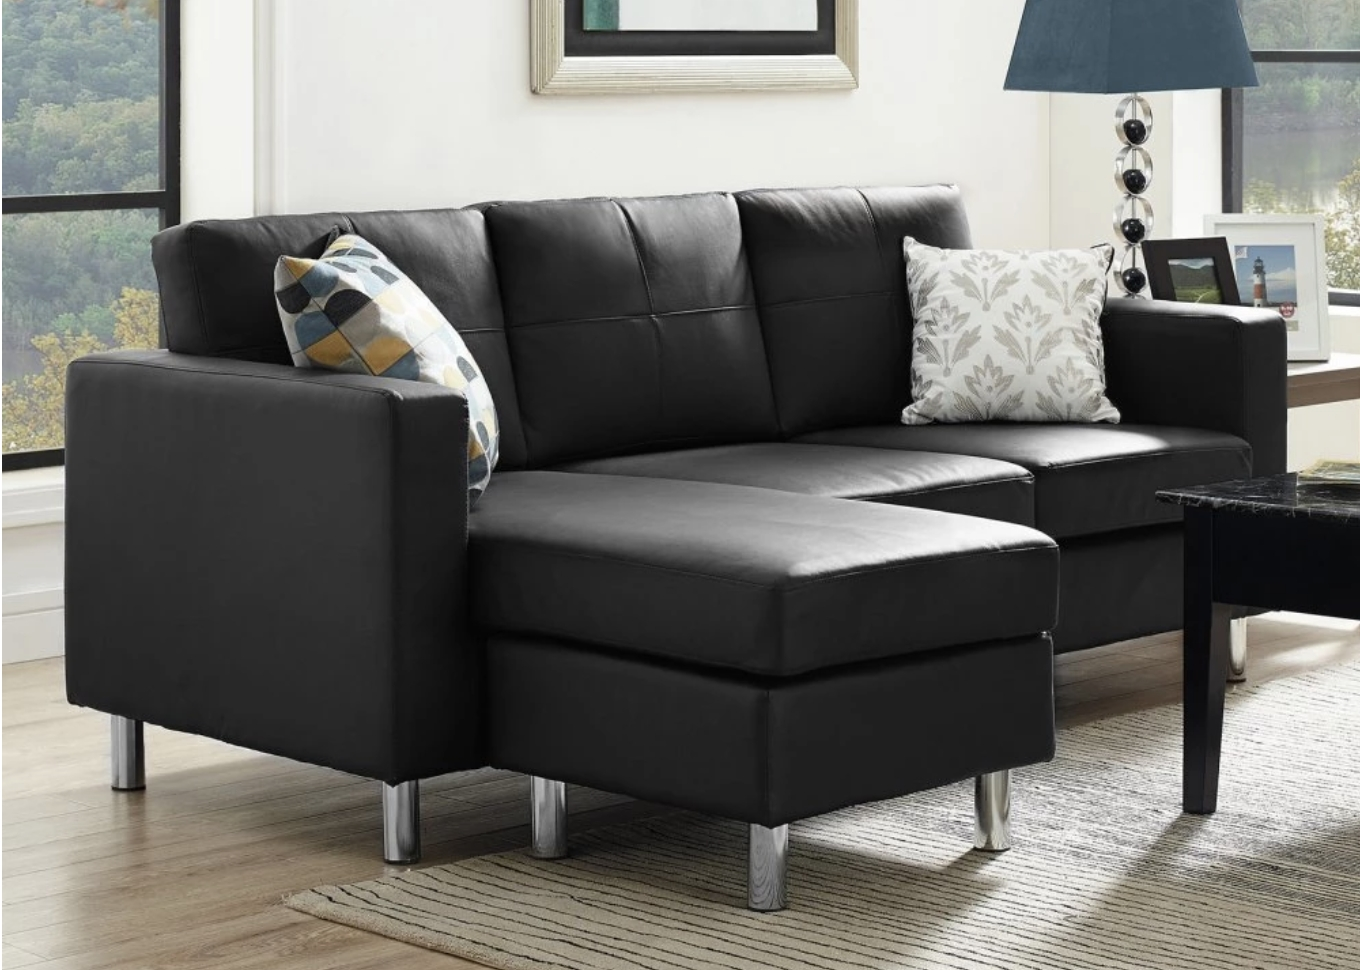 75 Modern Sectional Sofas For Small Spaces (2018) for Sectional Sofas That Can Be Rearranged (Image 1 of 10)